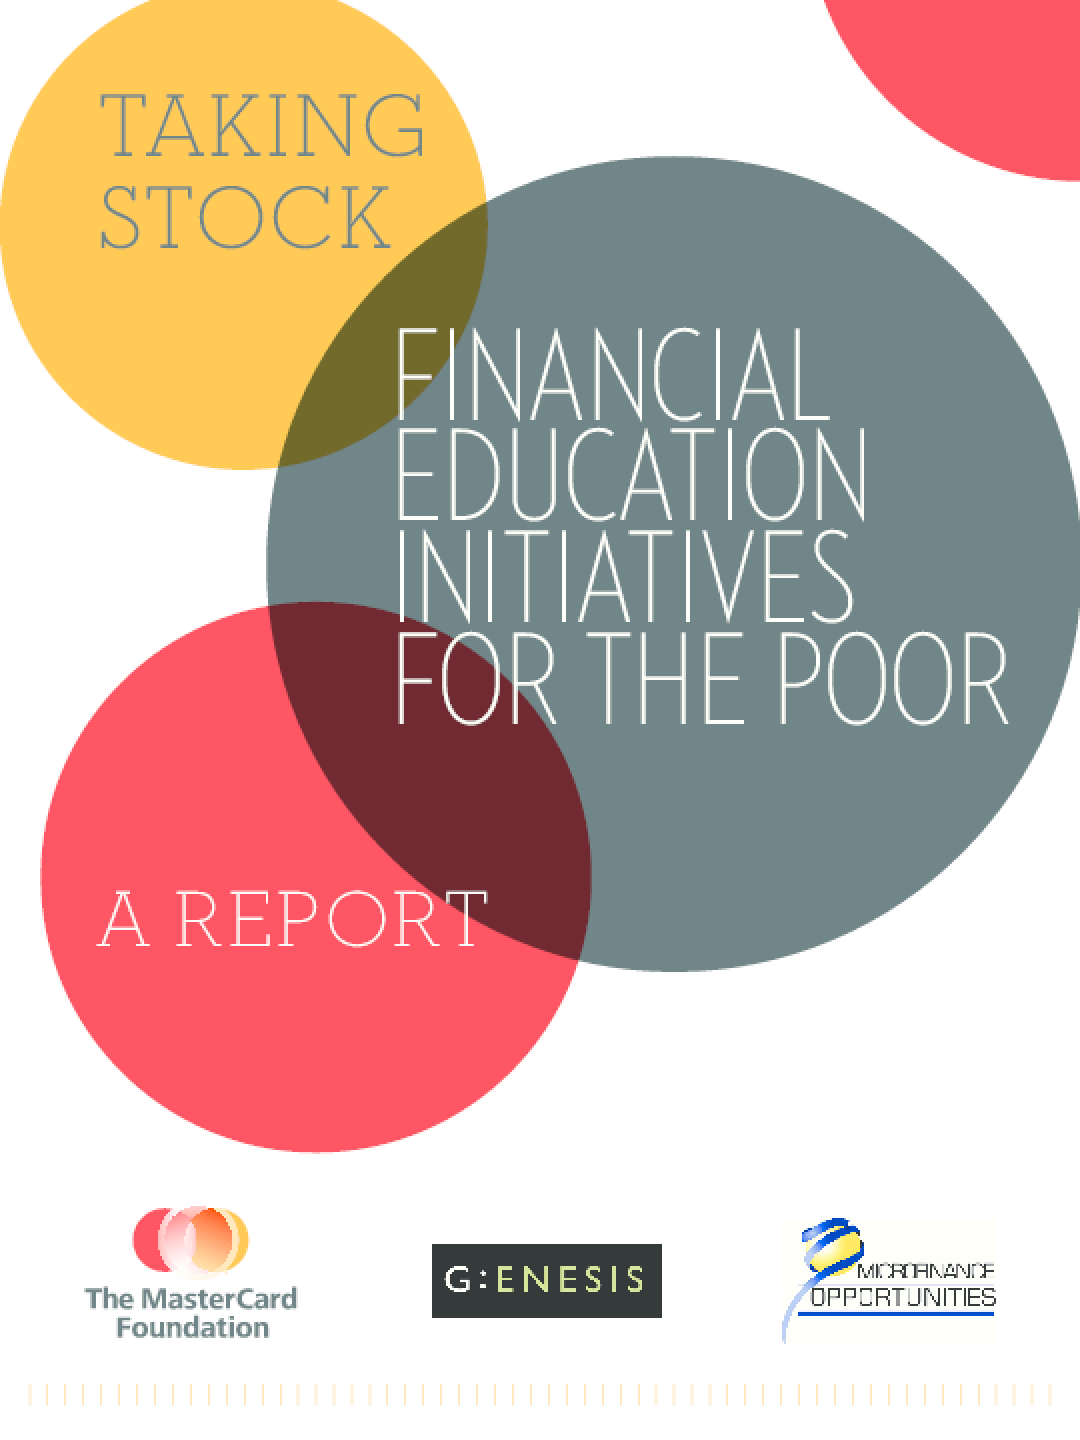 Taking Stock: Financial Education Initiatives for the Poor